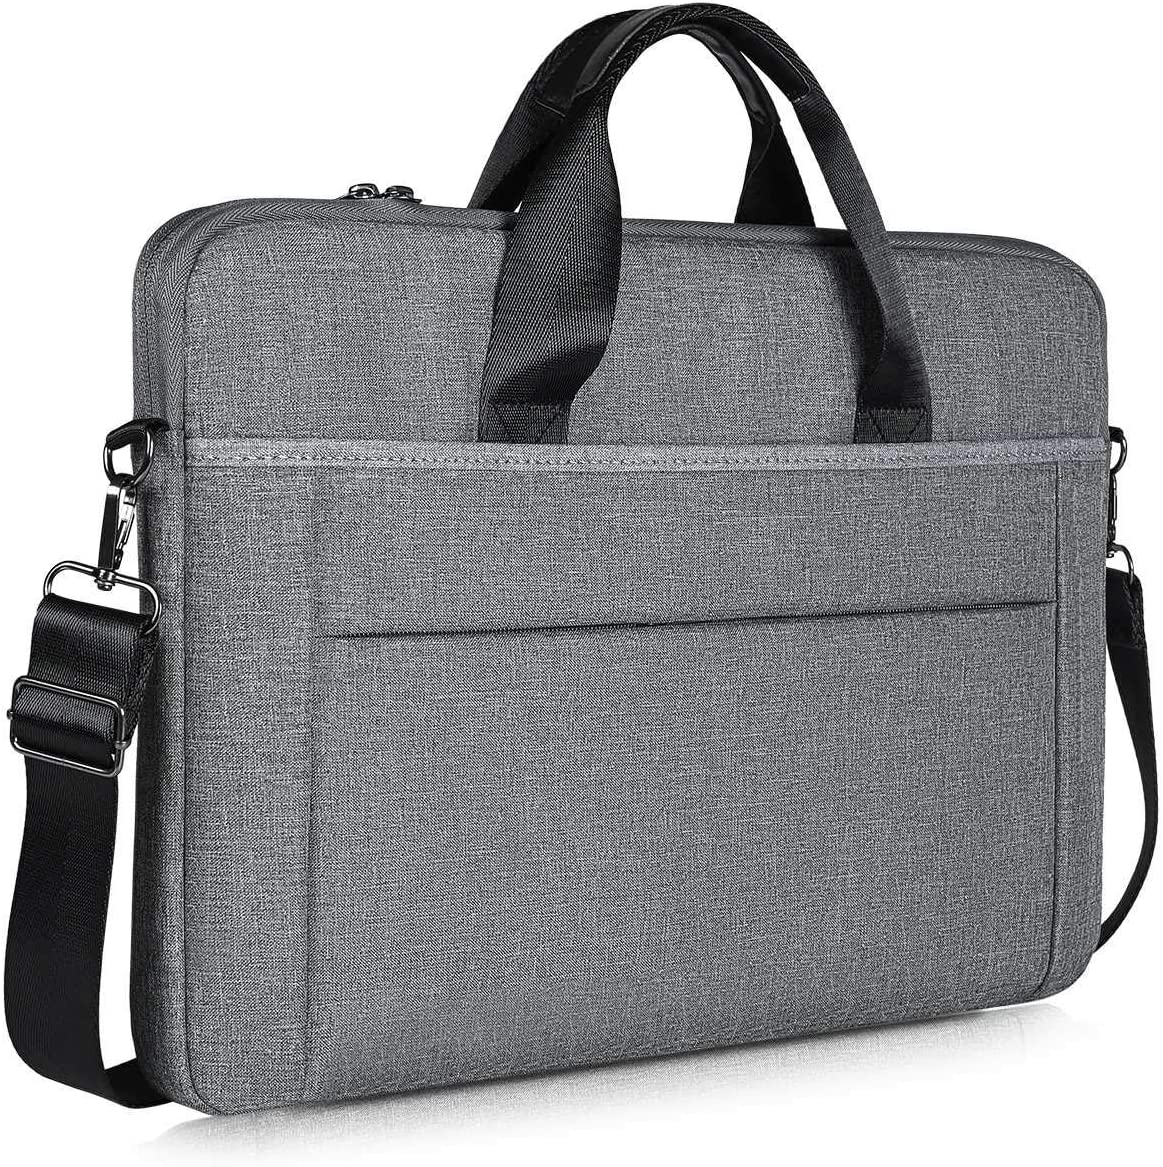 17-17.3 Inch Slim Laptop Case Shoulder Bag for HP 17.3 Laptop, Acer Predator 17, Dell Inspiron 17, Lenovo Ideapad L340 17.3, 17 inch Water Resisatant Business Briefcase Bag for Men and Women, Grey